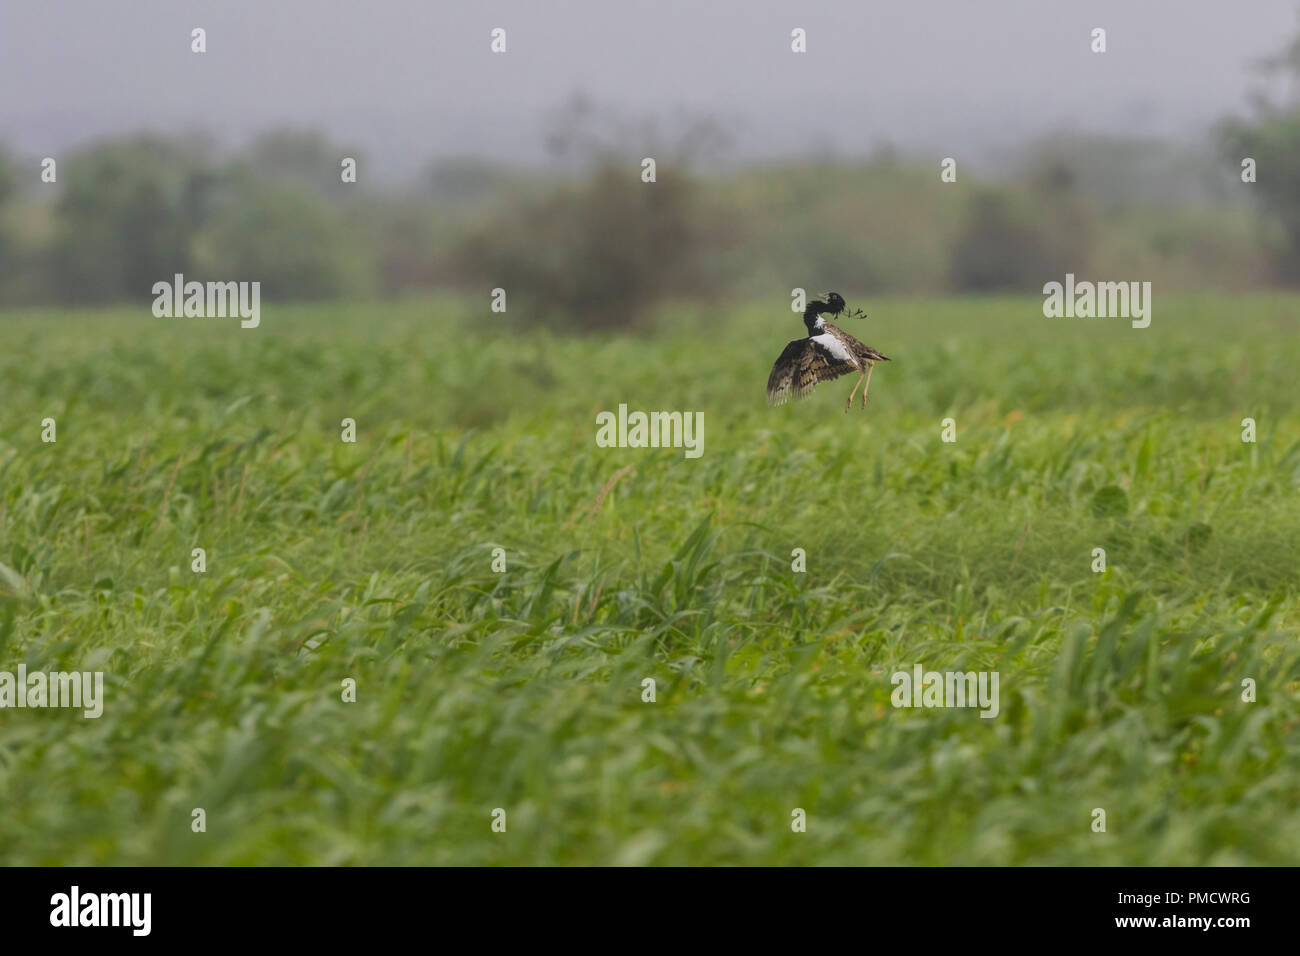 Rare and endangered Lesser Florican displaying mating ritual in lush green grassland - Stock Image